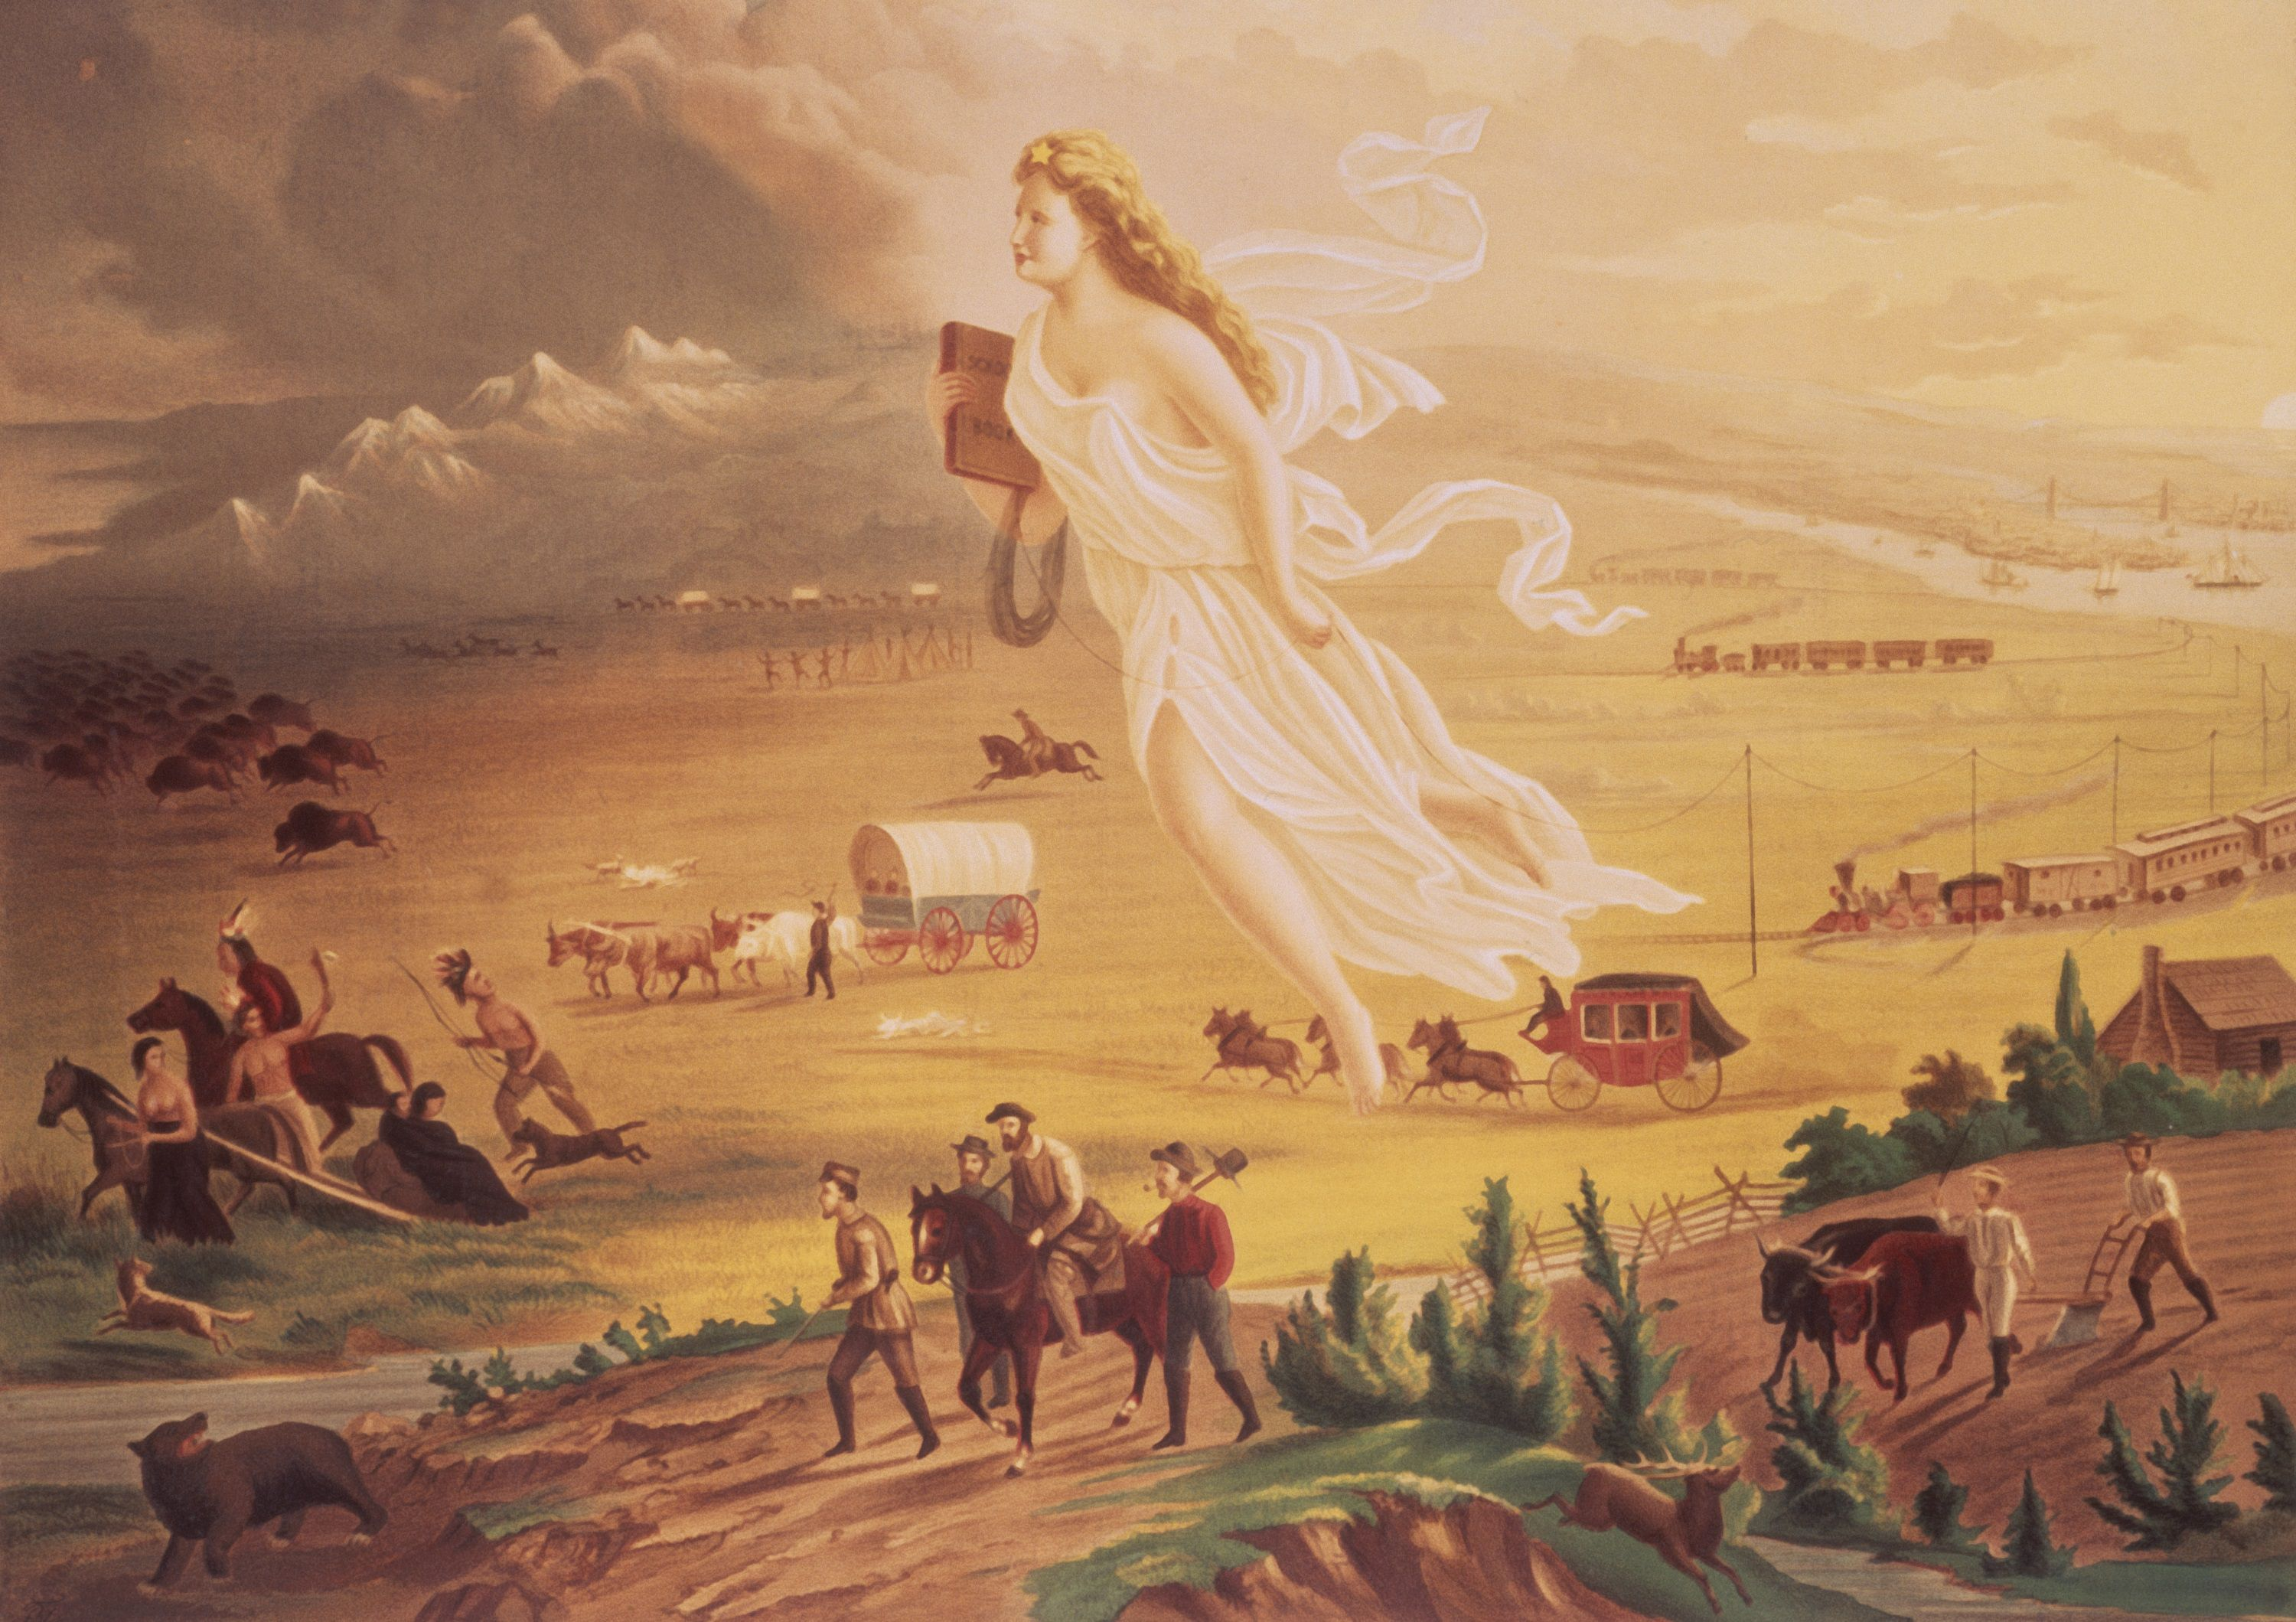 Manifest Destiny S Meaning To American Expansion